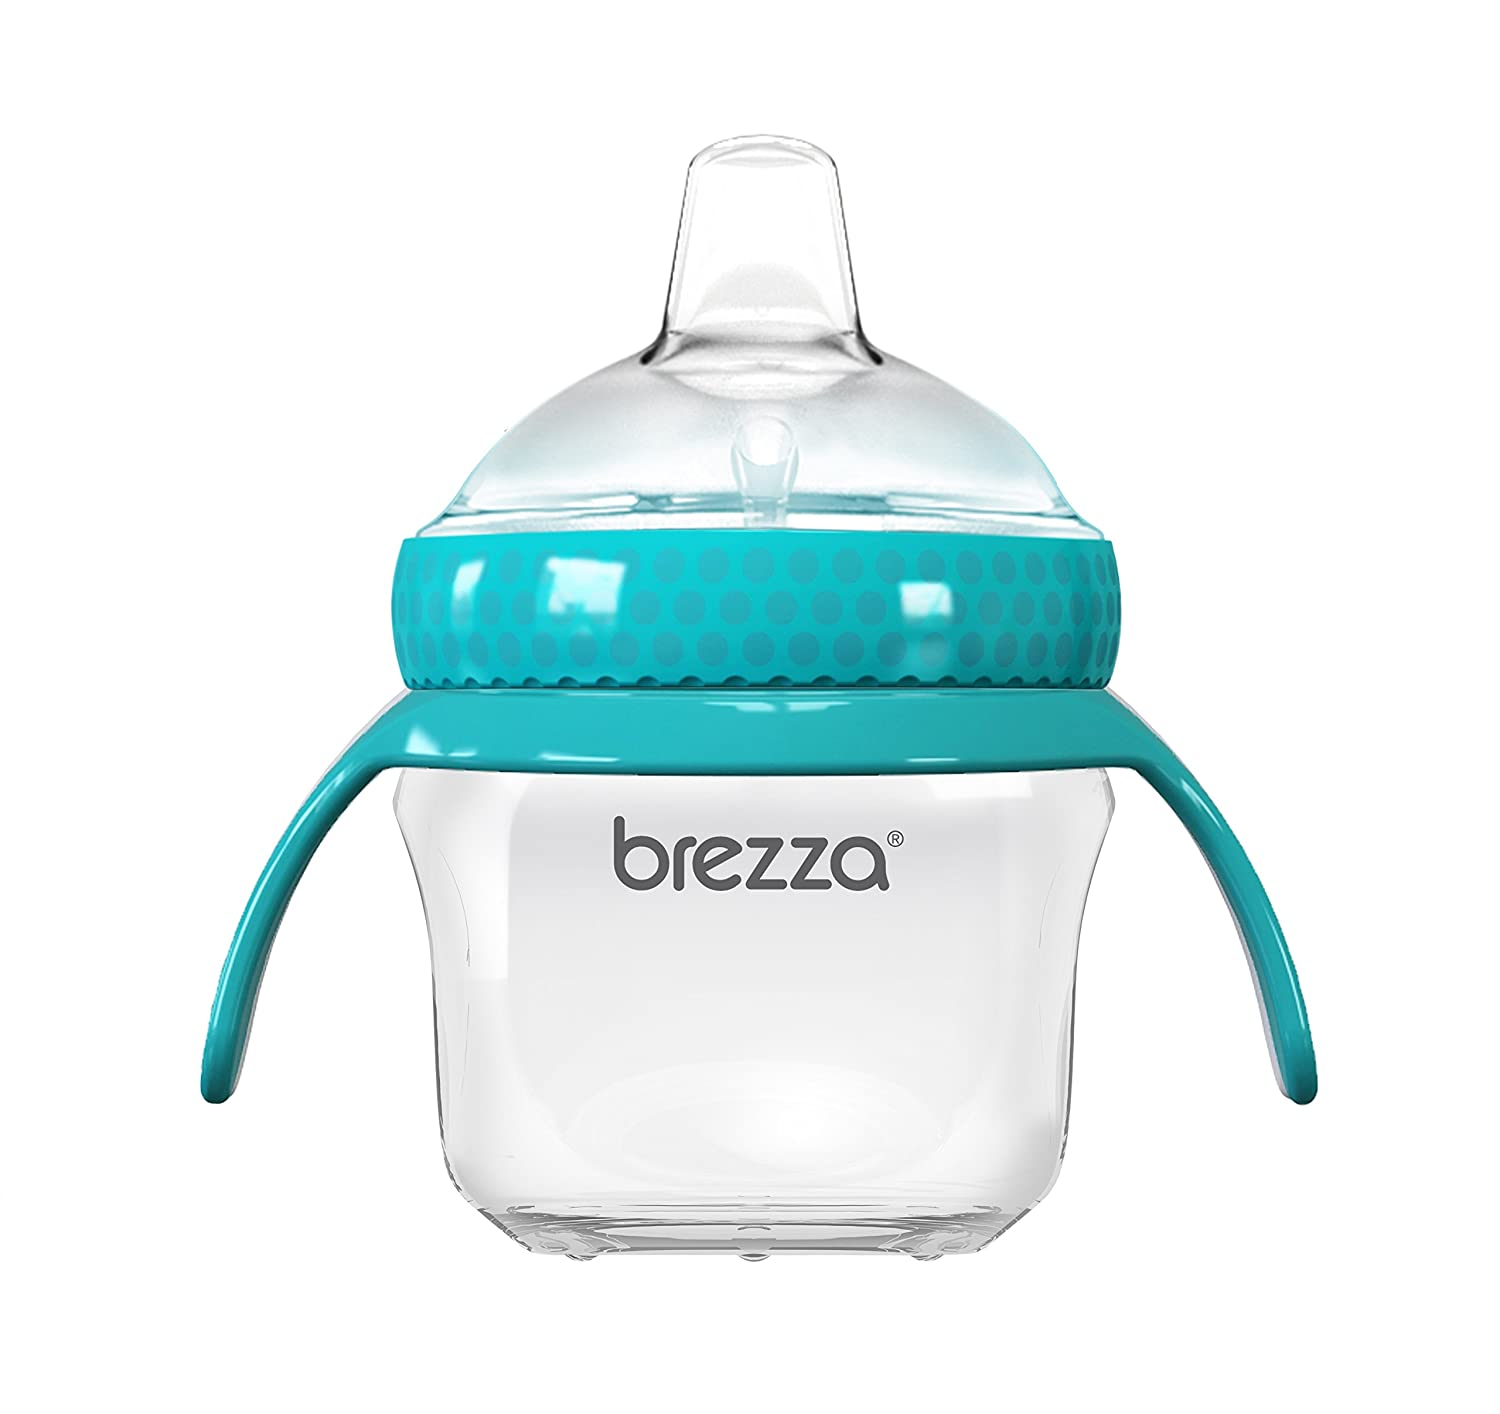 Baby Brezza Transition Sippy Cup with Handles - Leak & Spill Proof - Soft Silicone Spout, BPA Free, Wide Mouth for Easy Cleaning - Great Transitional Cup for Infants and Toddlers – 5 Ounce - Blue BZB00200